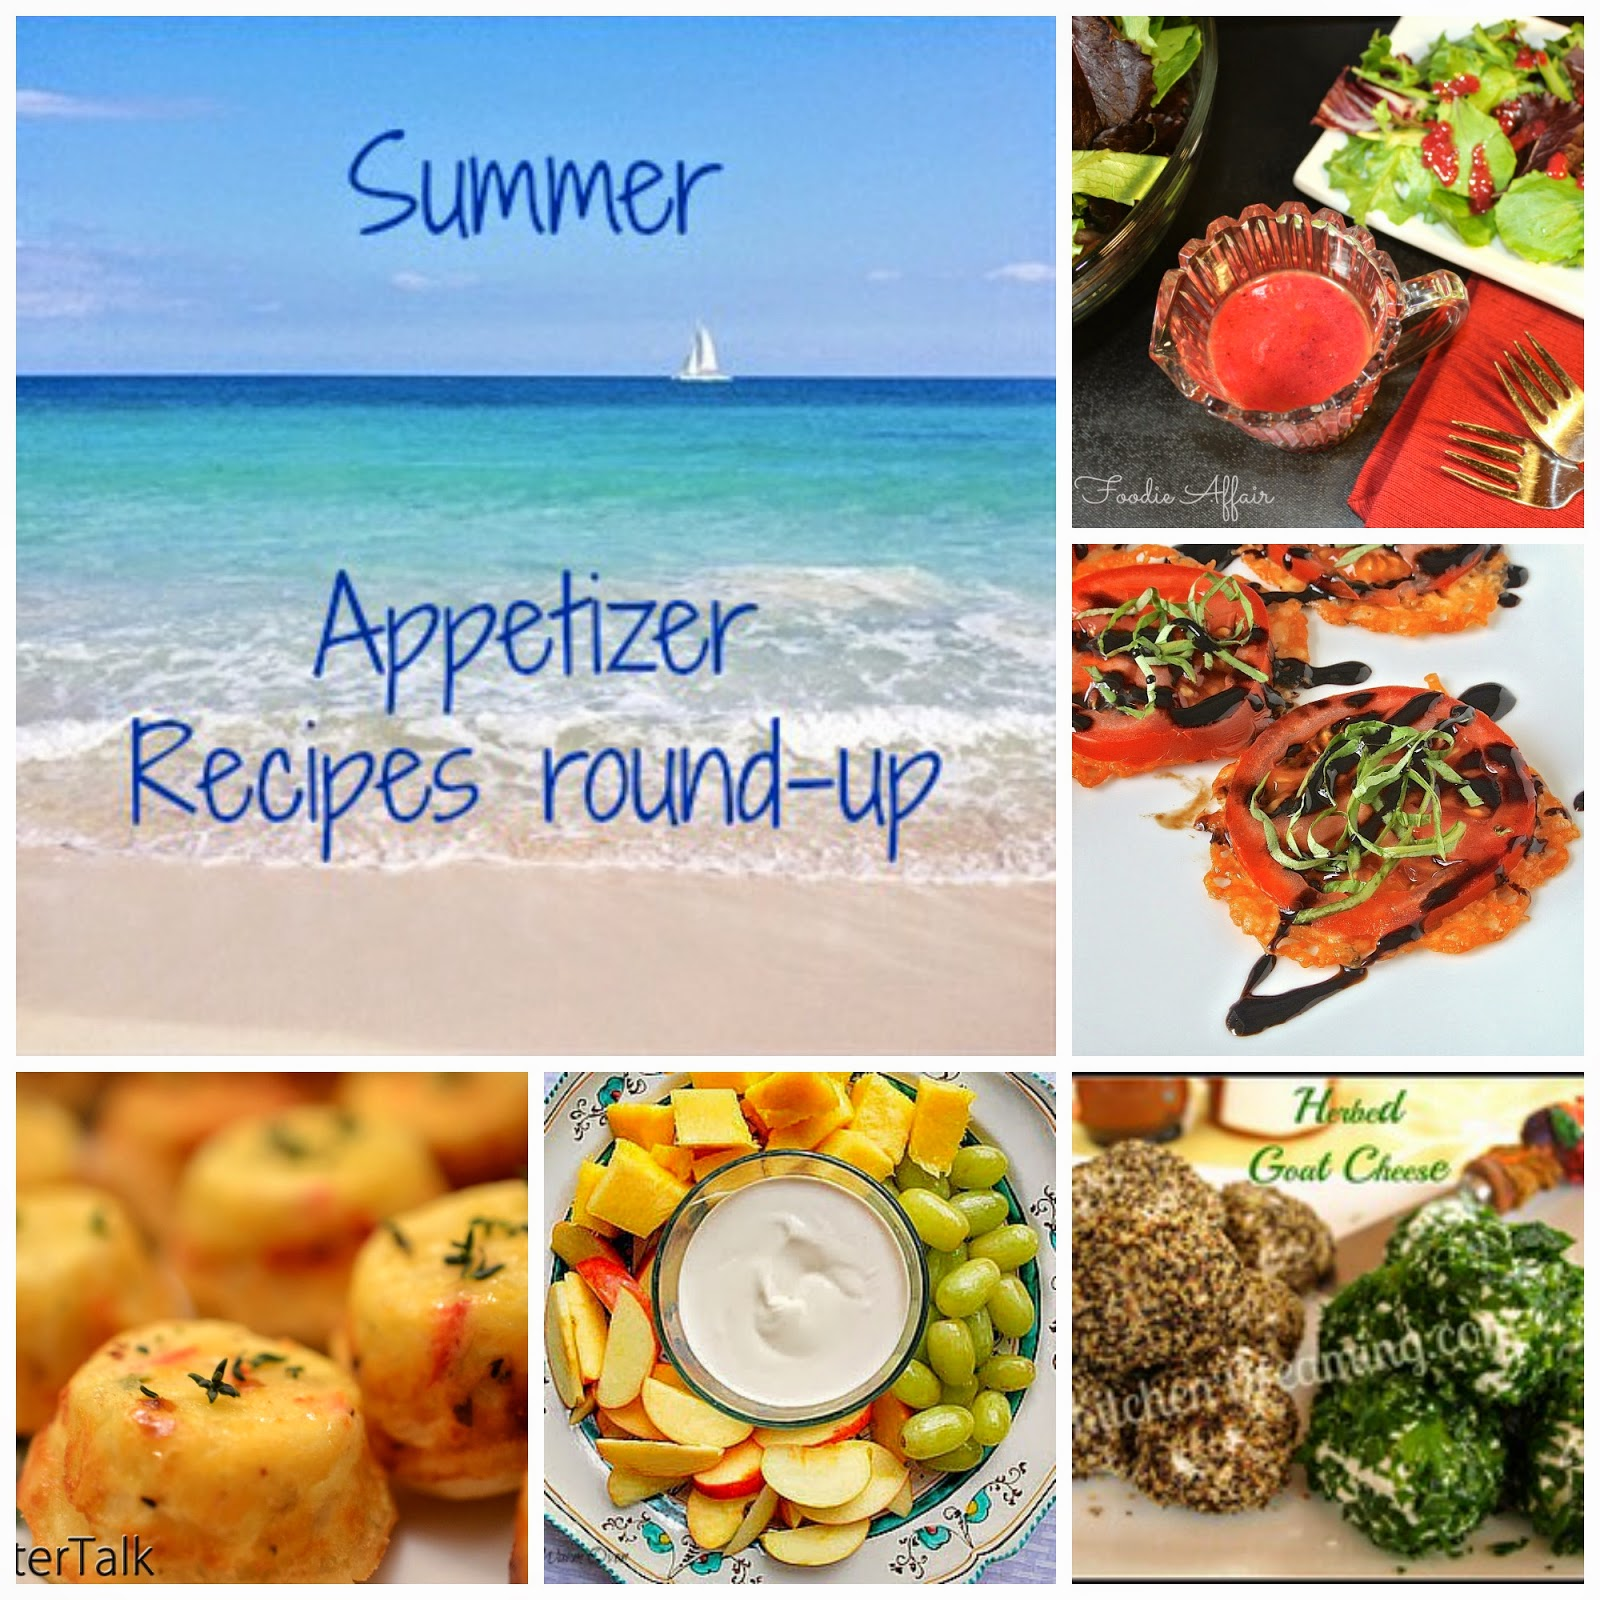 Summer appetizer recipes round-up